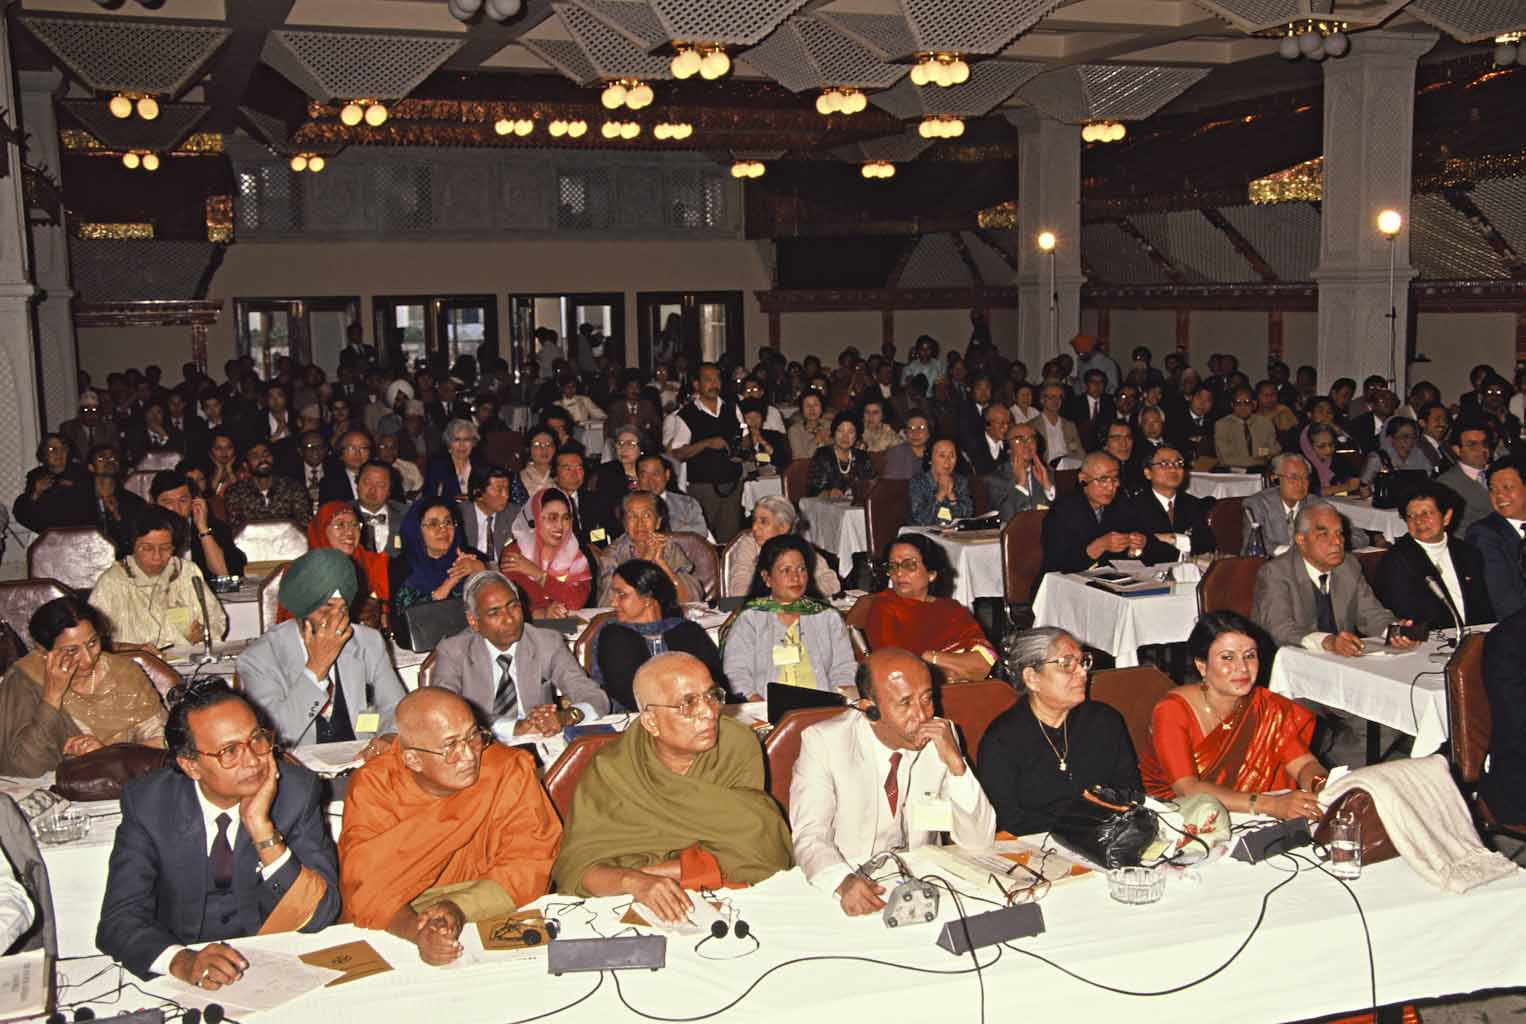 4th Assembly at Kathmandu, Nepal in 1991